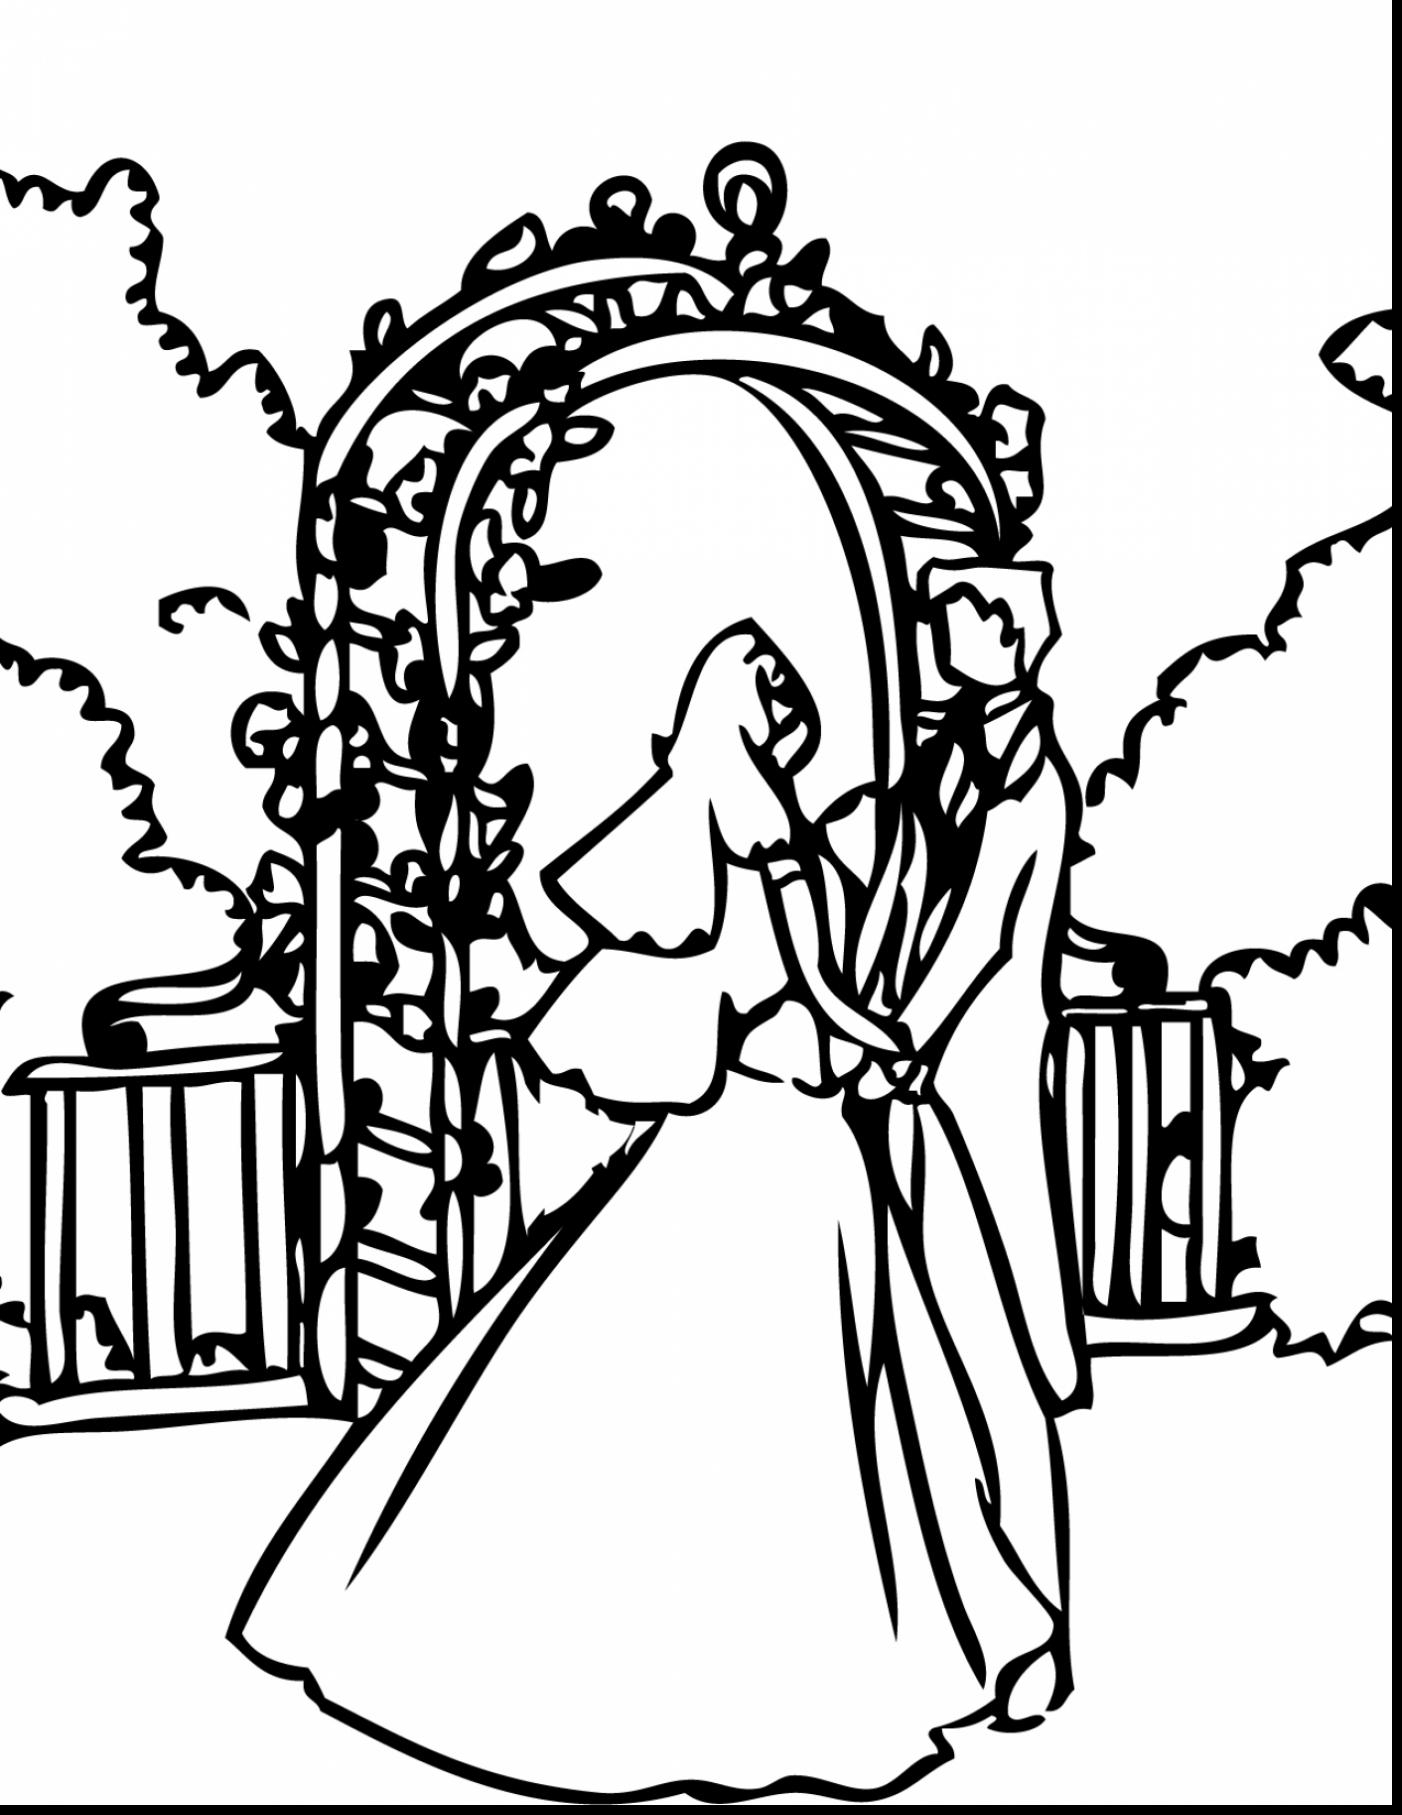 wedding coloring pages wedding coloring pages best coloring pages for kids wedding coloring pages